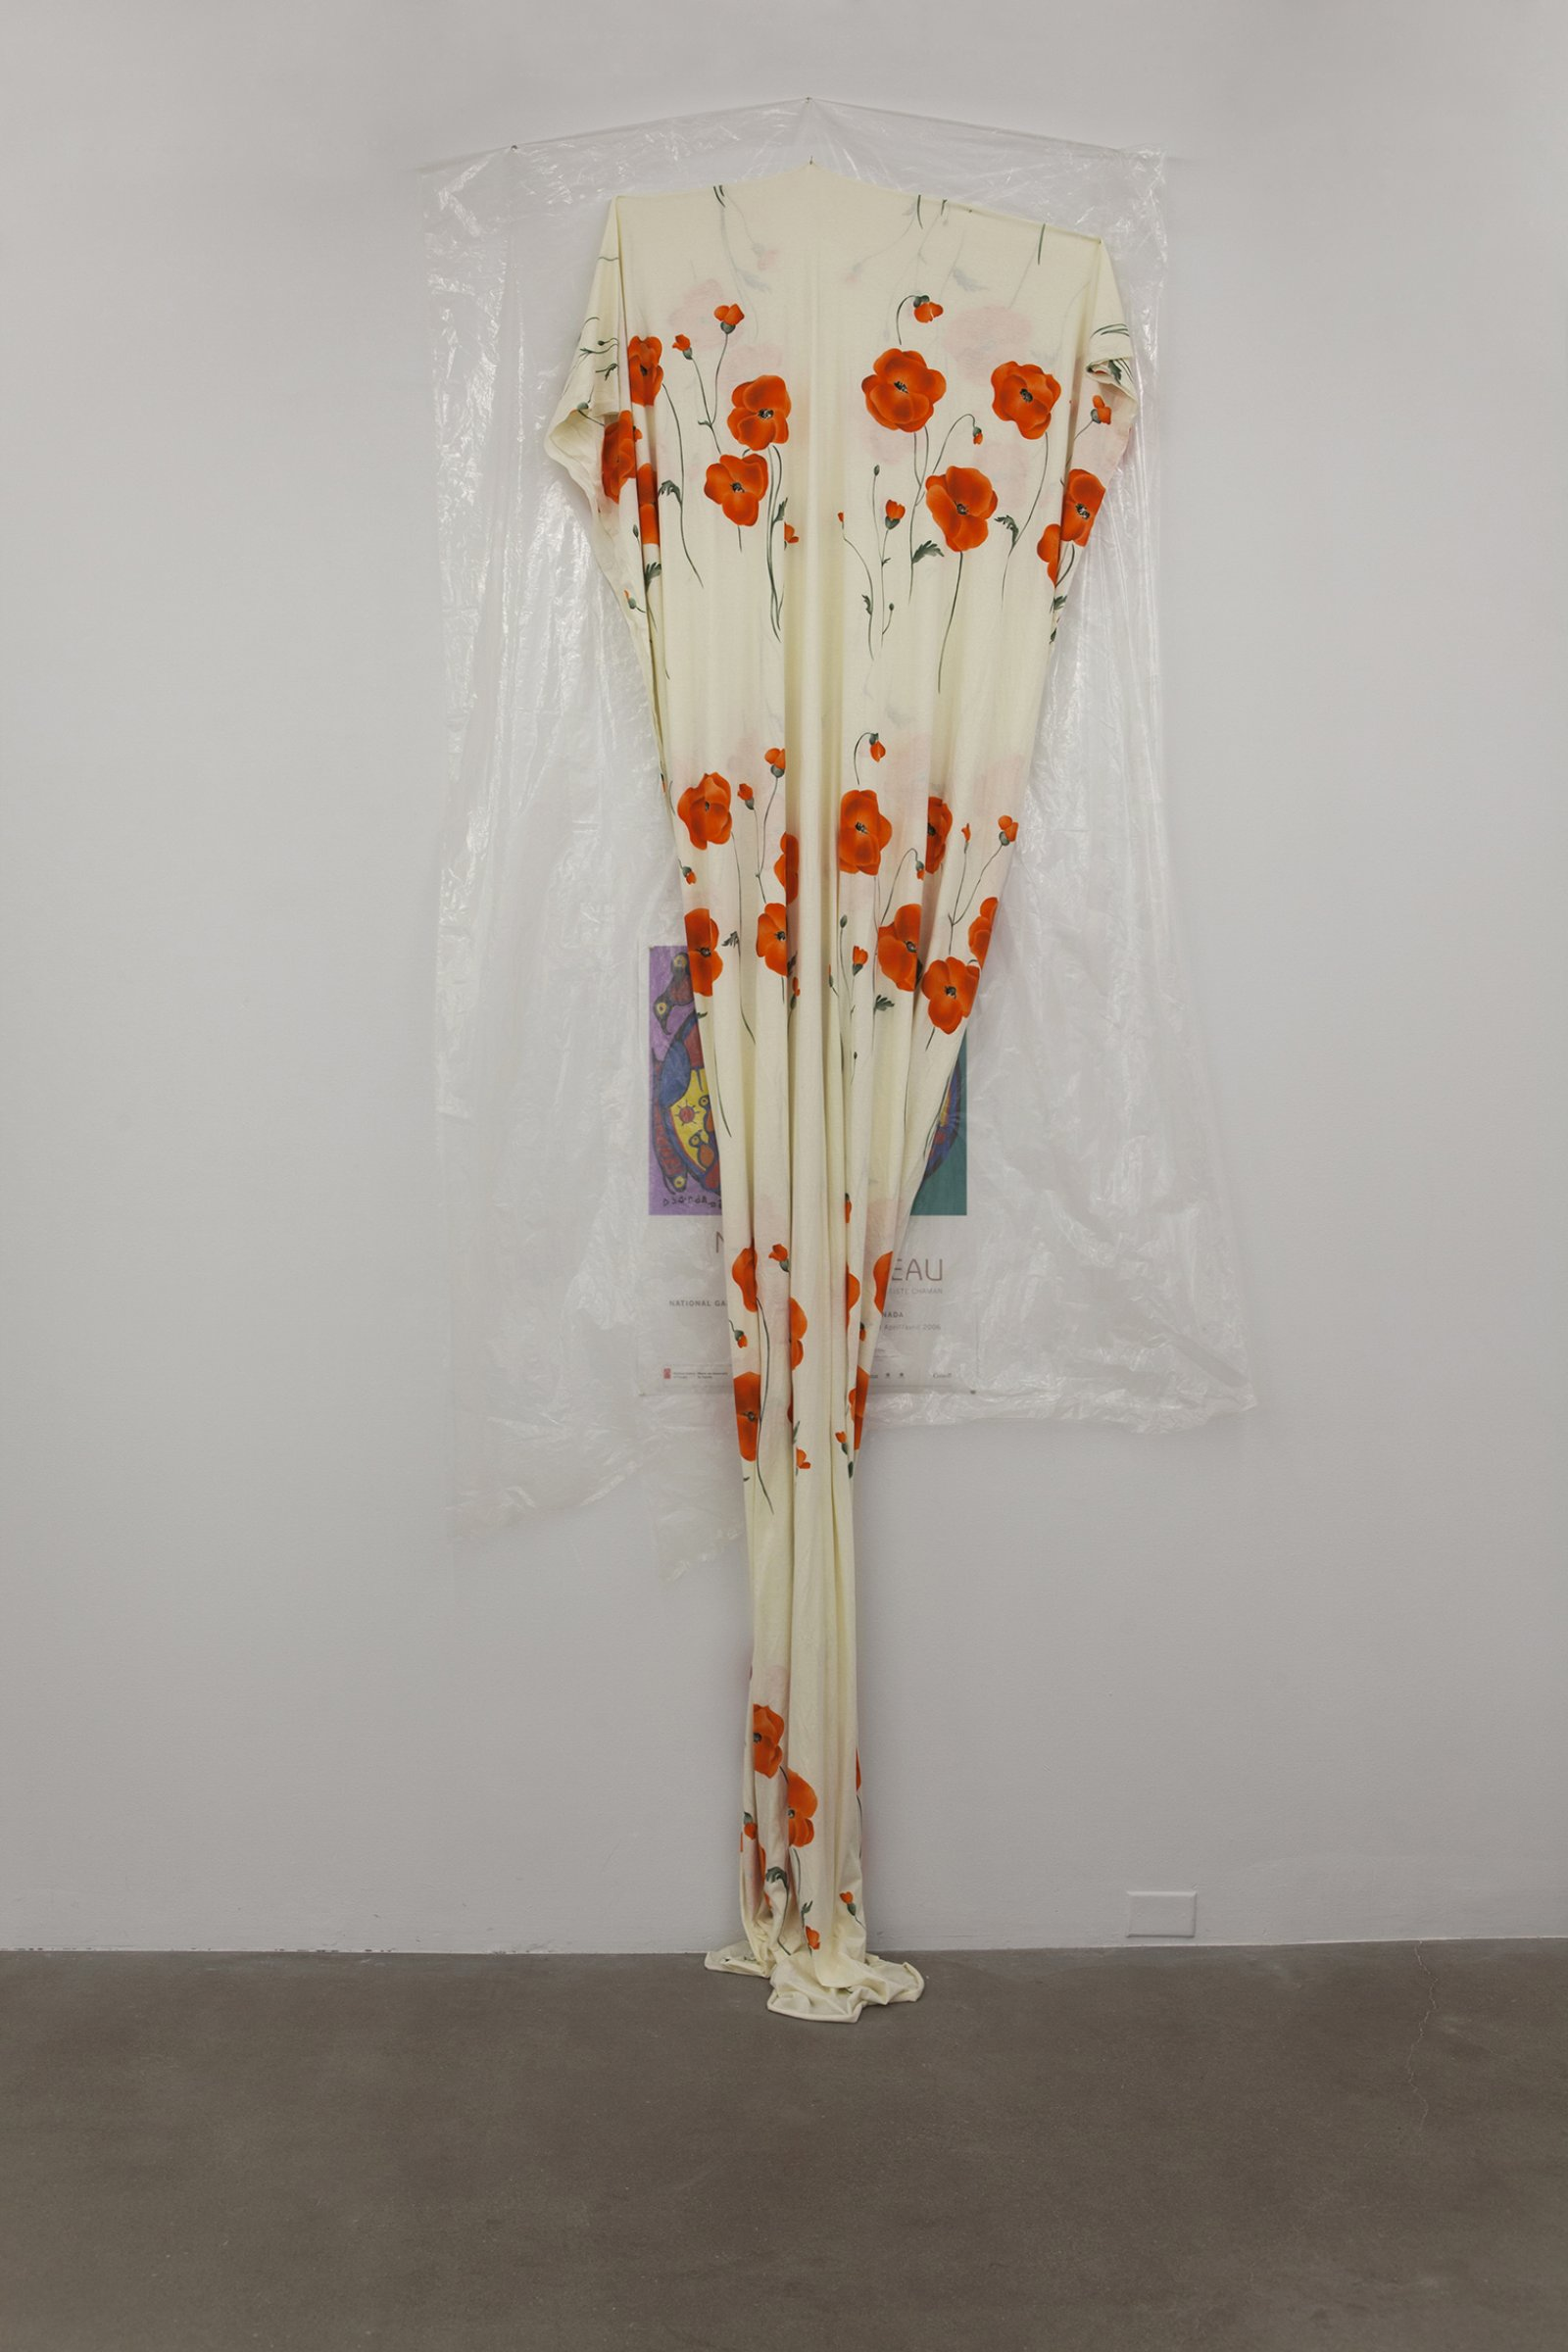 Duane Linklater,body,2016, plastic sheeting, cotton cloth, nails, thumb tacks, paper poster from National Gallery of Canada, Ottawa, dimensions variable